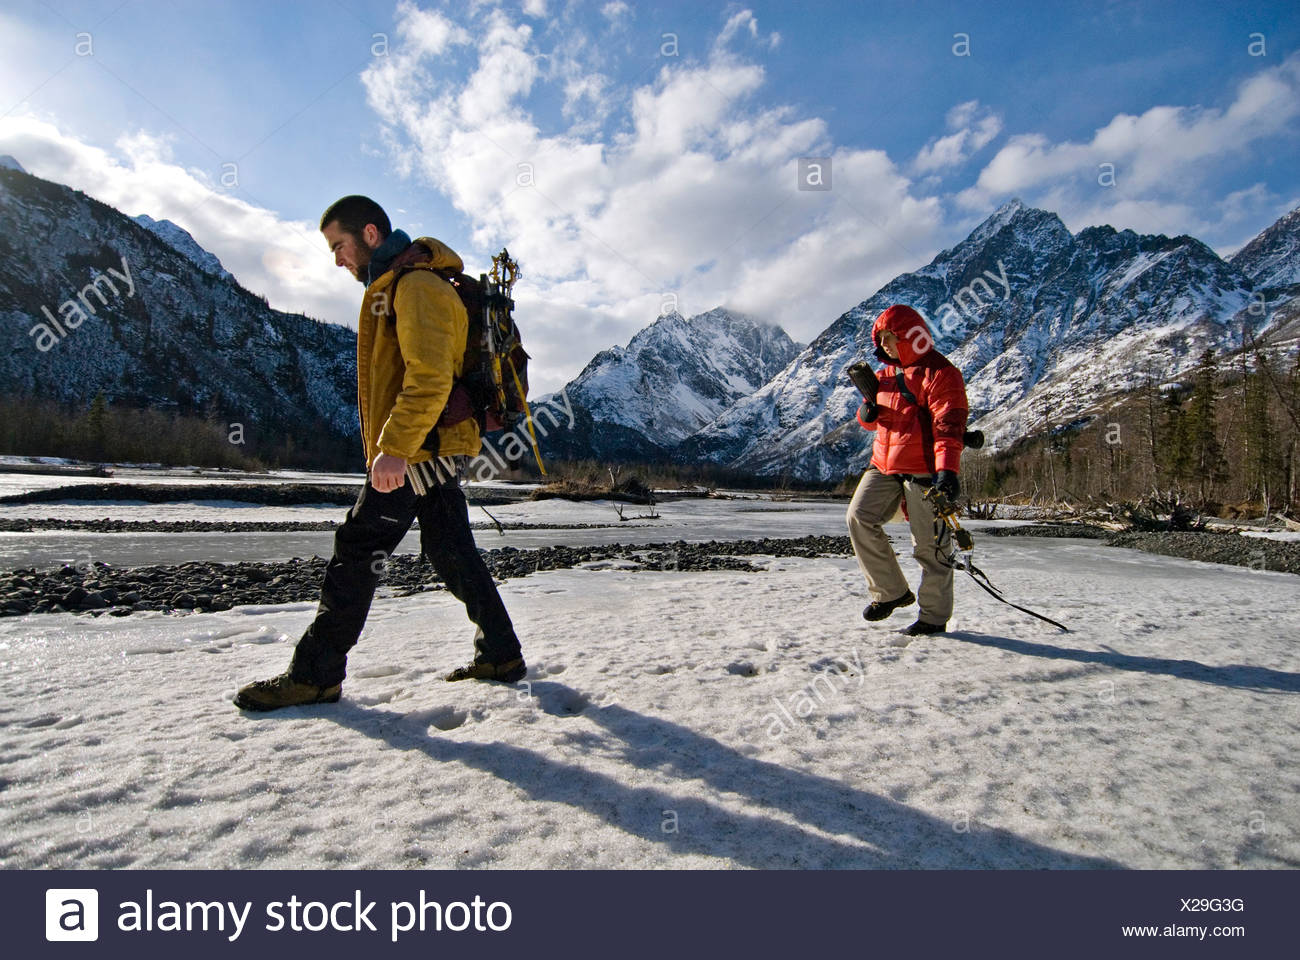 Two young ice climbers walk across a snowy river, with gear in hand, on their way to an afternoon ice climb in Echo Bend, Alaska - Stock Image